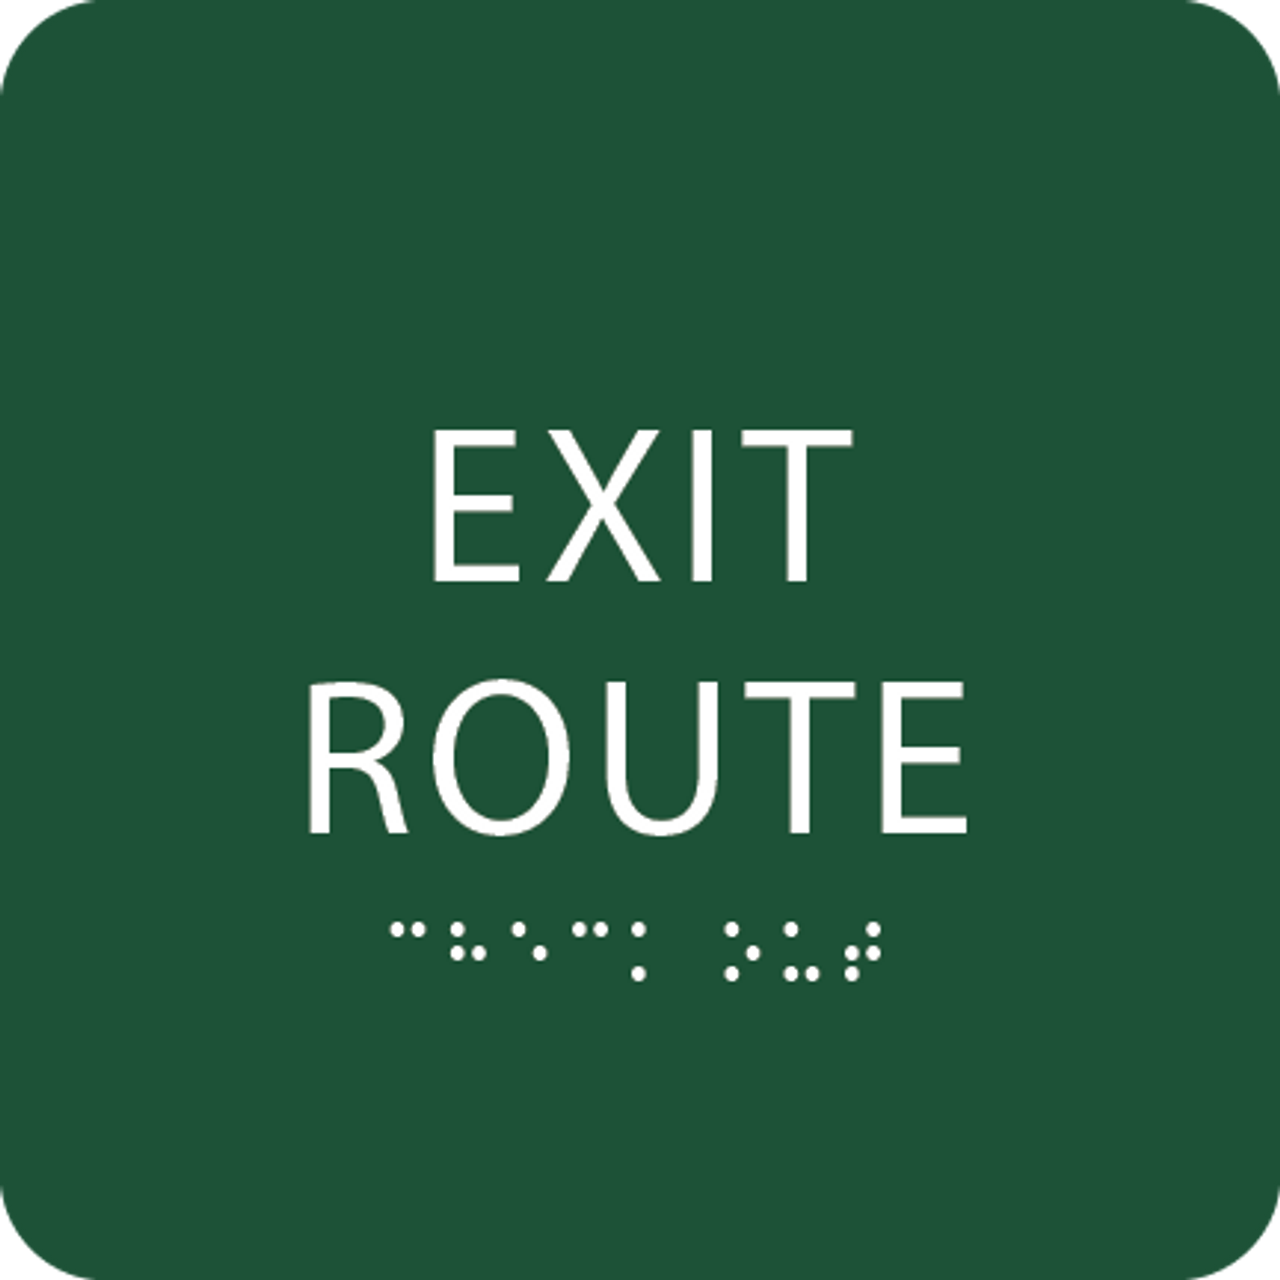 Green Tactile Exit Route Sign